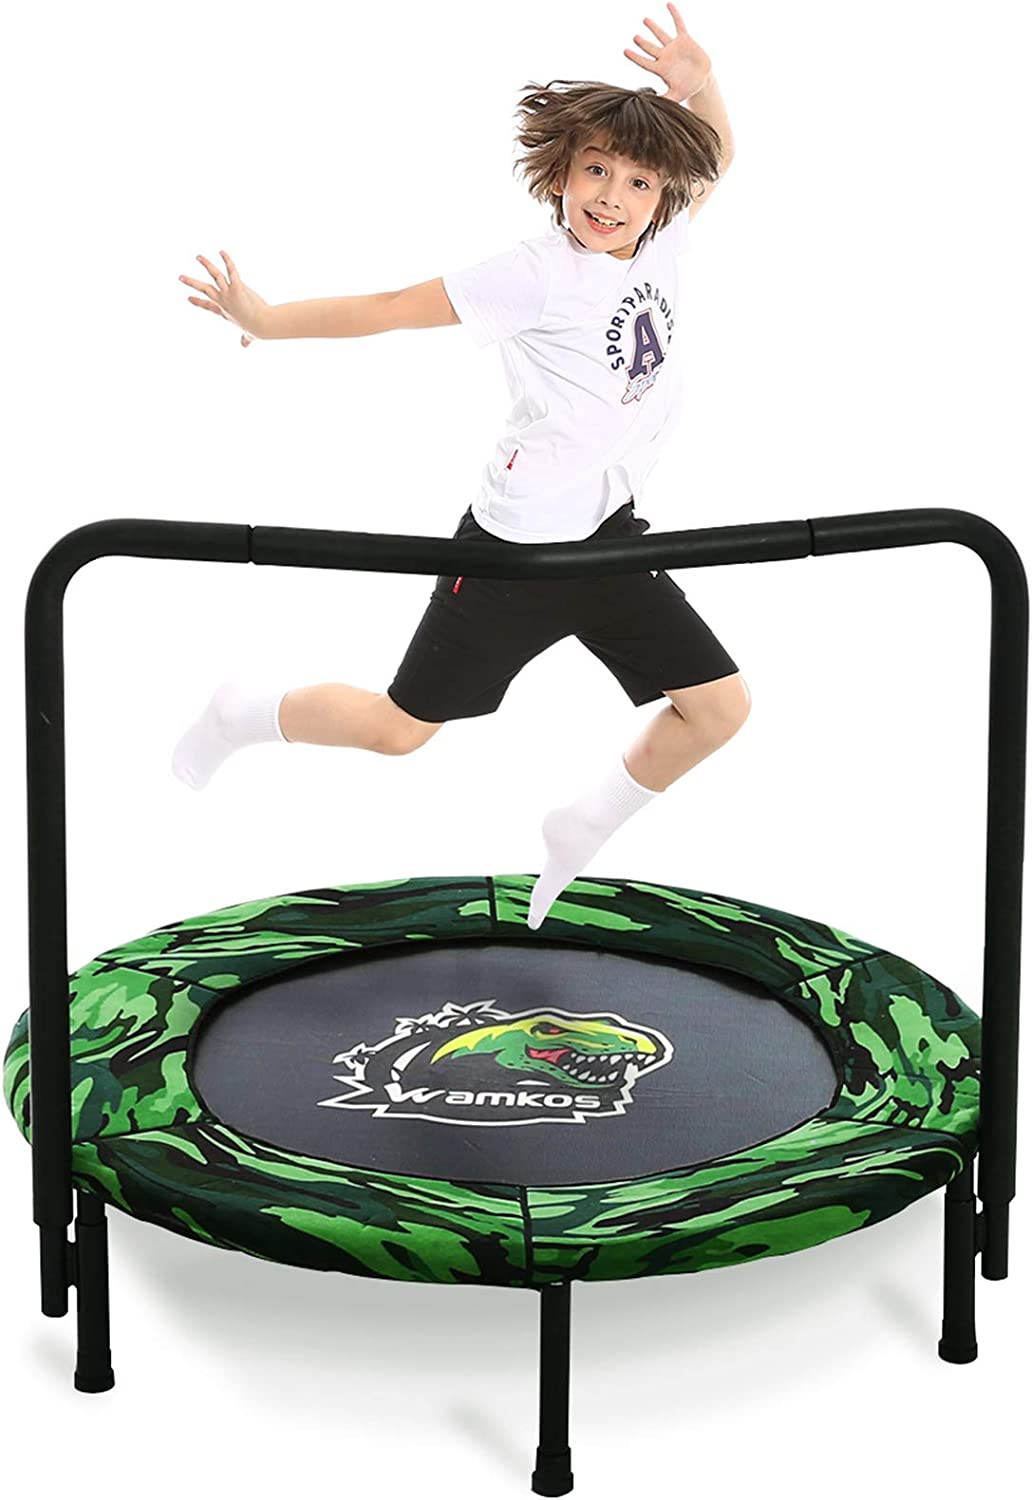 The best trampolines for kids in UK for 2021